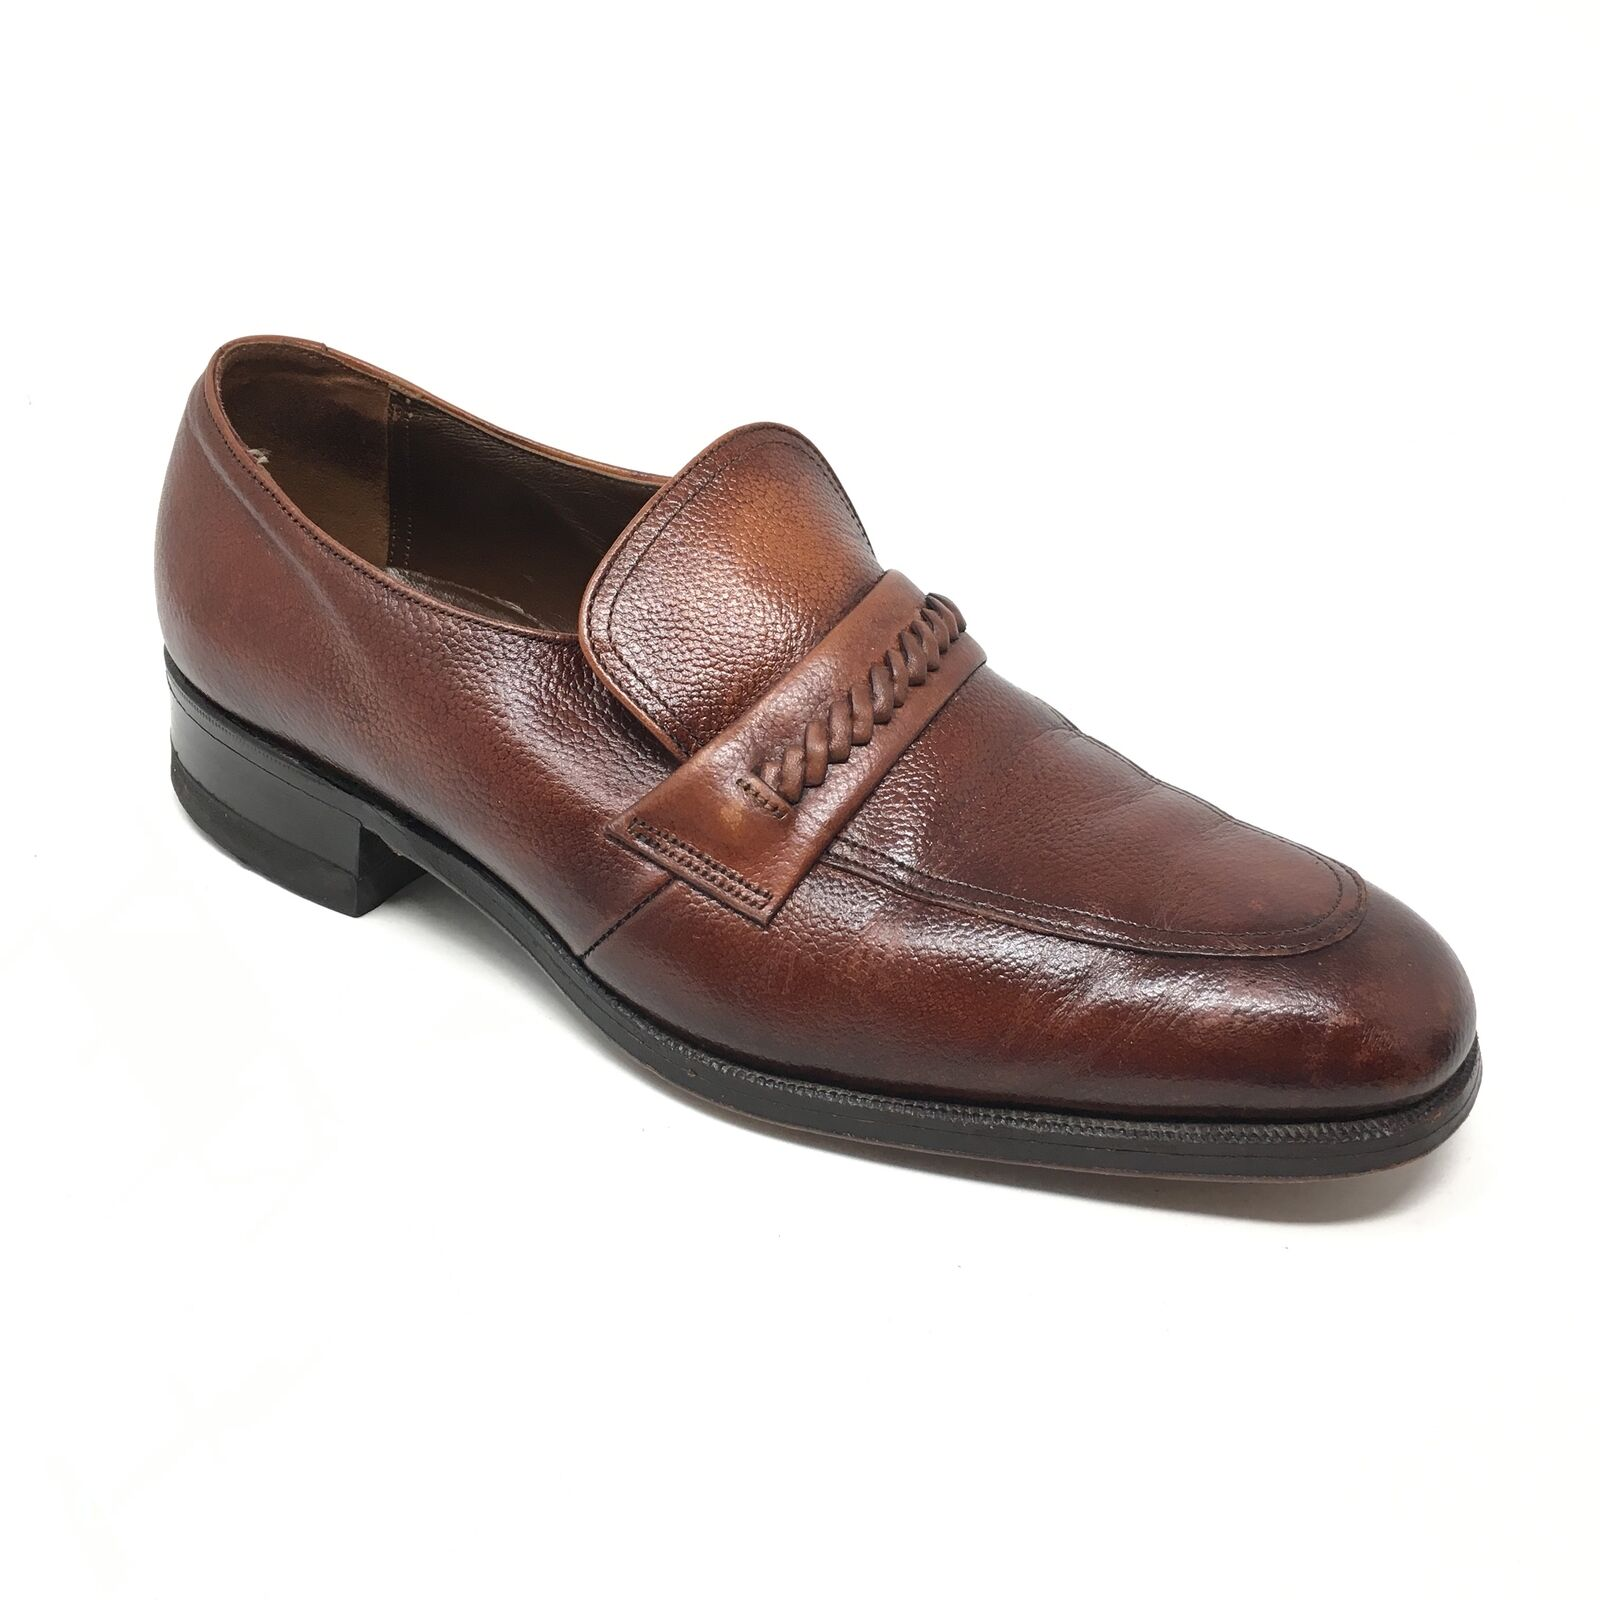 Men's VINTAGE Florsheim Loafers Brown Dress Shoes Size 7.5D Brown Loafers Grain Leather P5 227e85